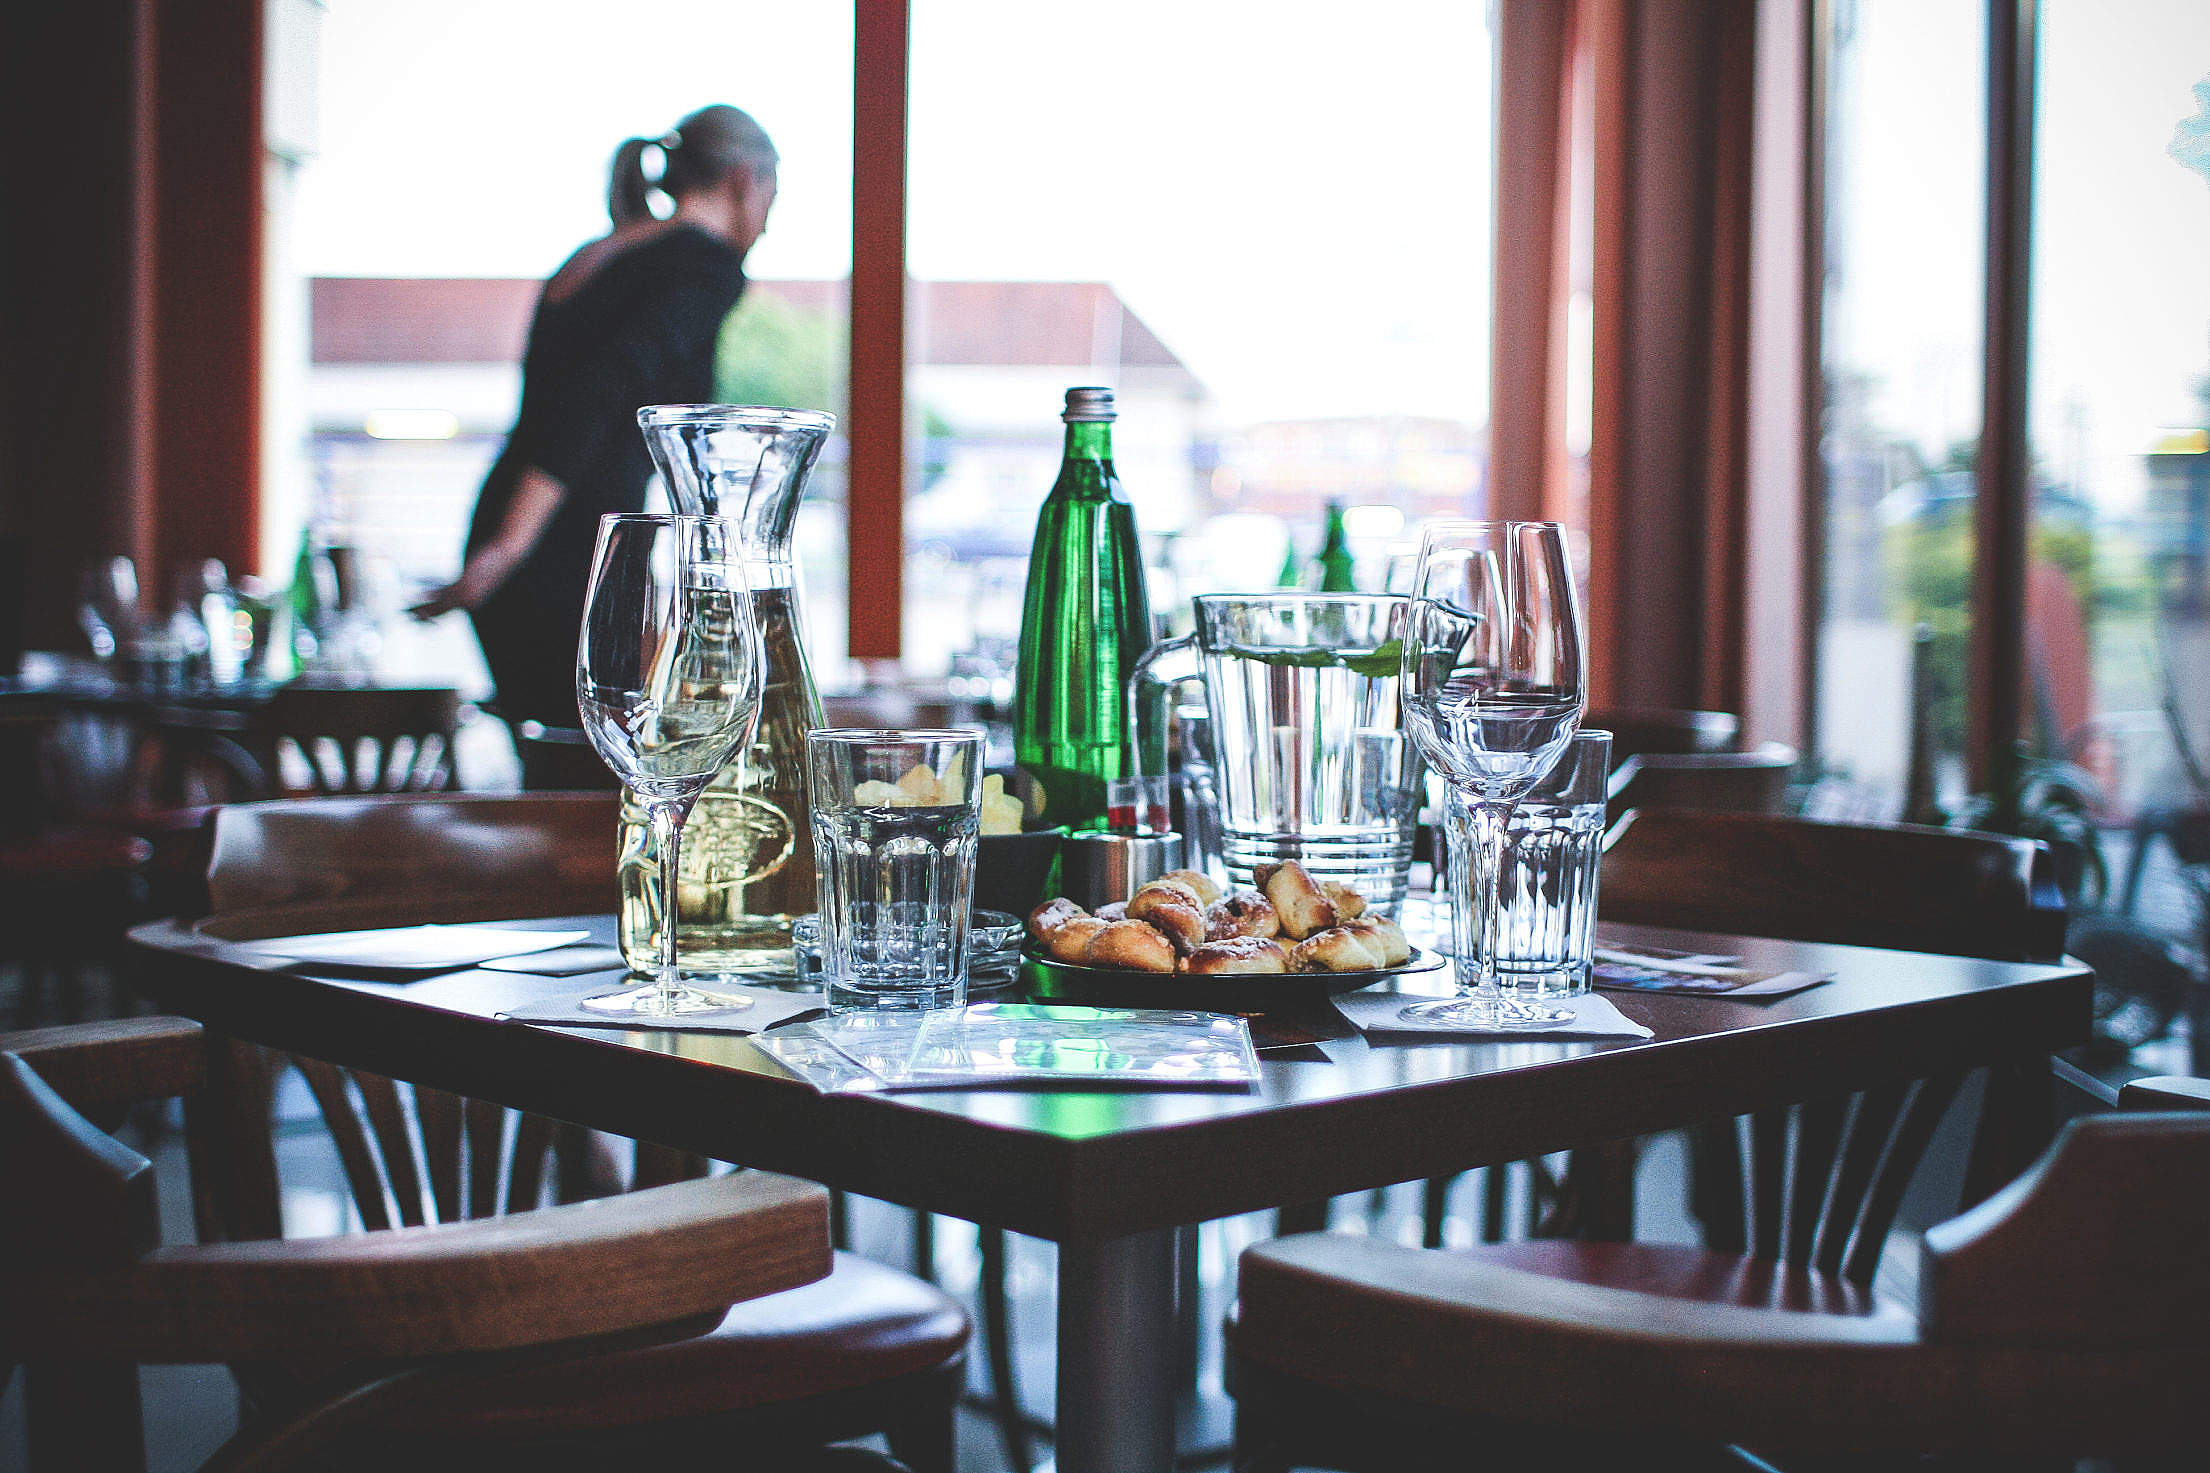 Table Is Ready For A Party! Free Stock Photo